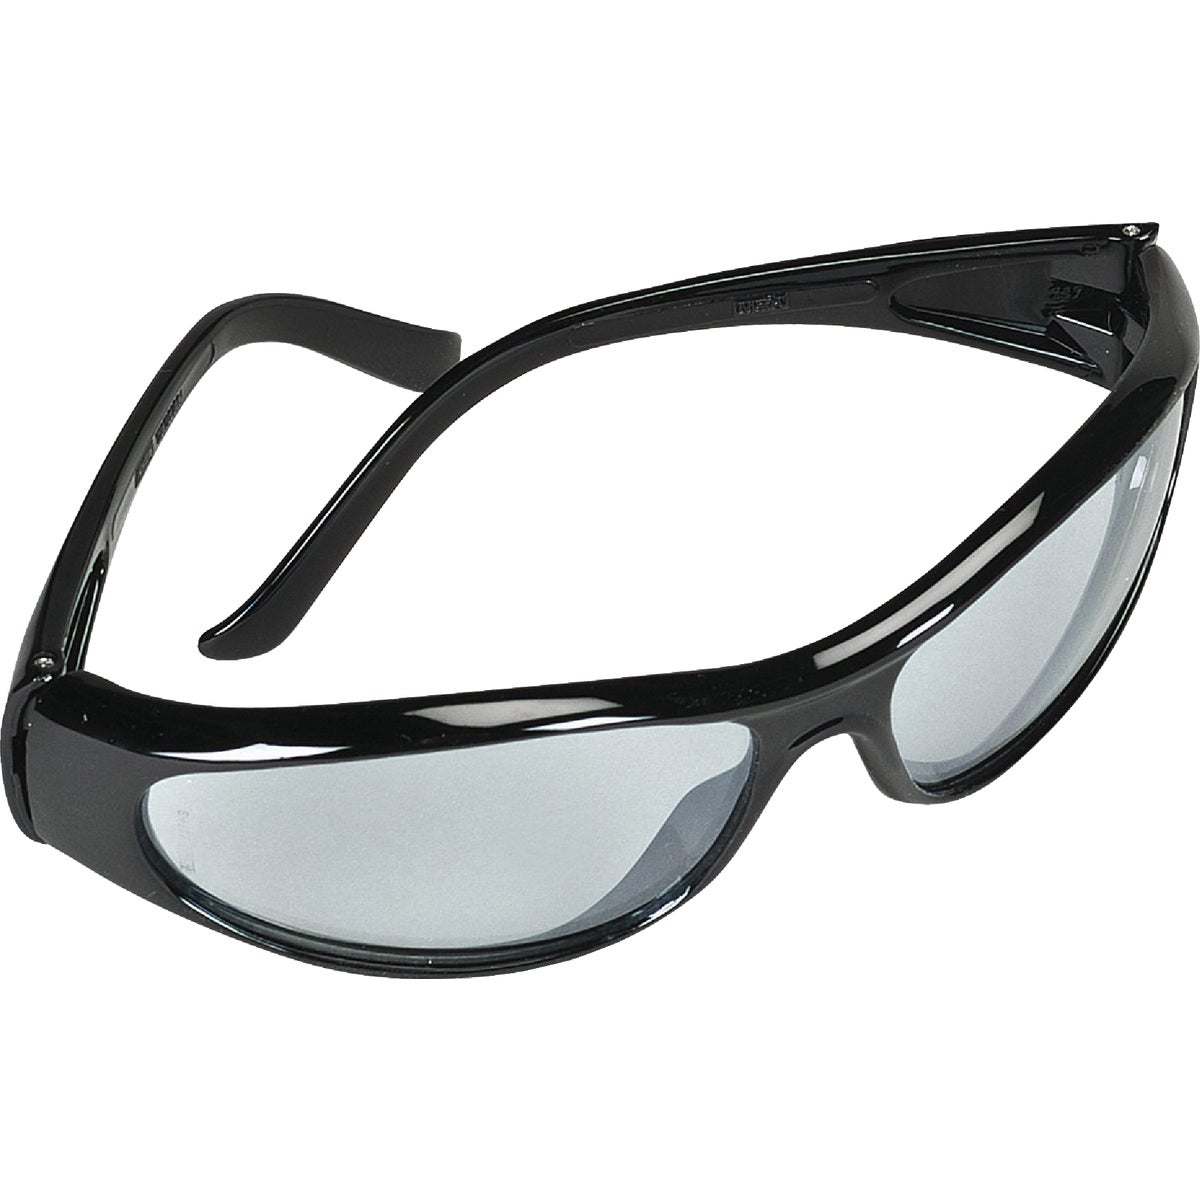 BLU MIRROR SAFTY GLASSES